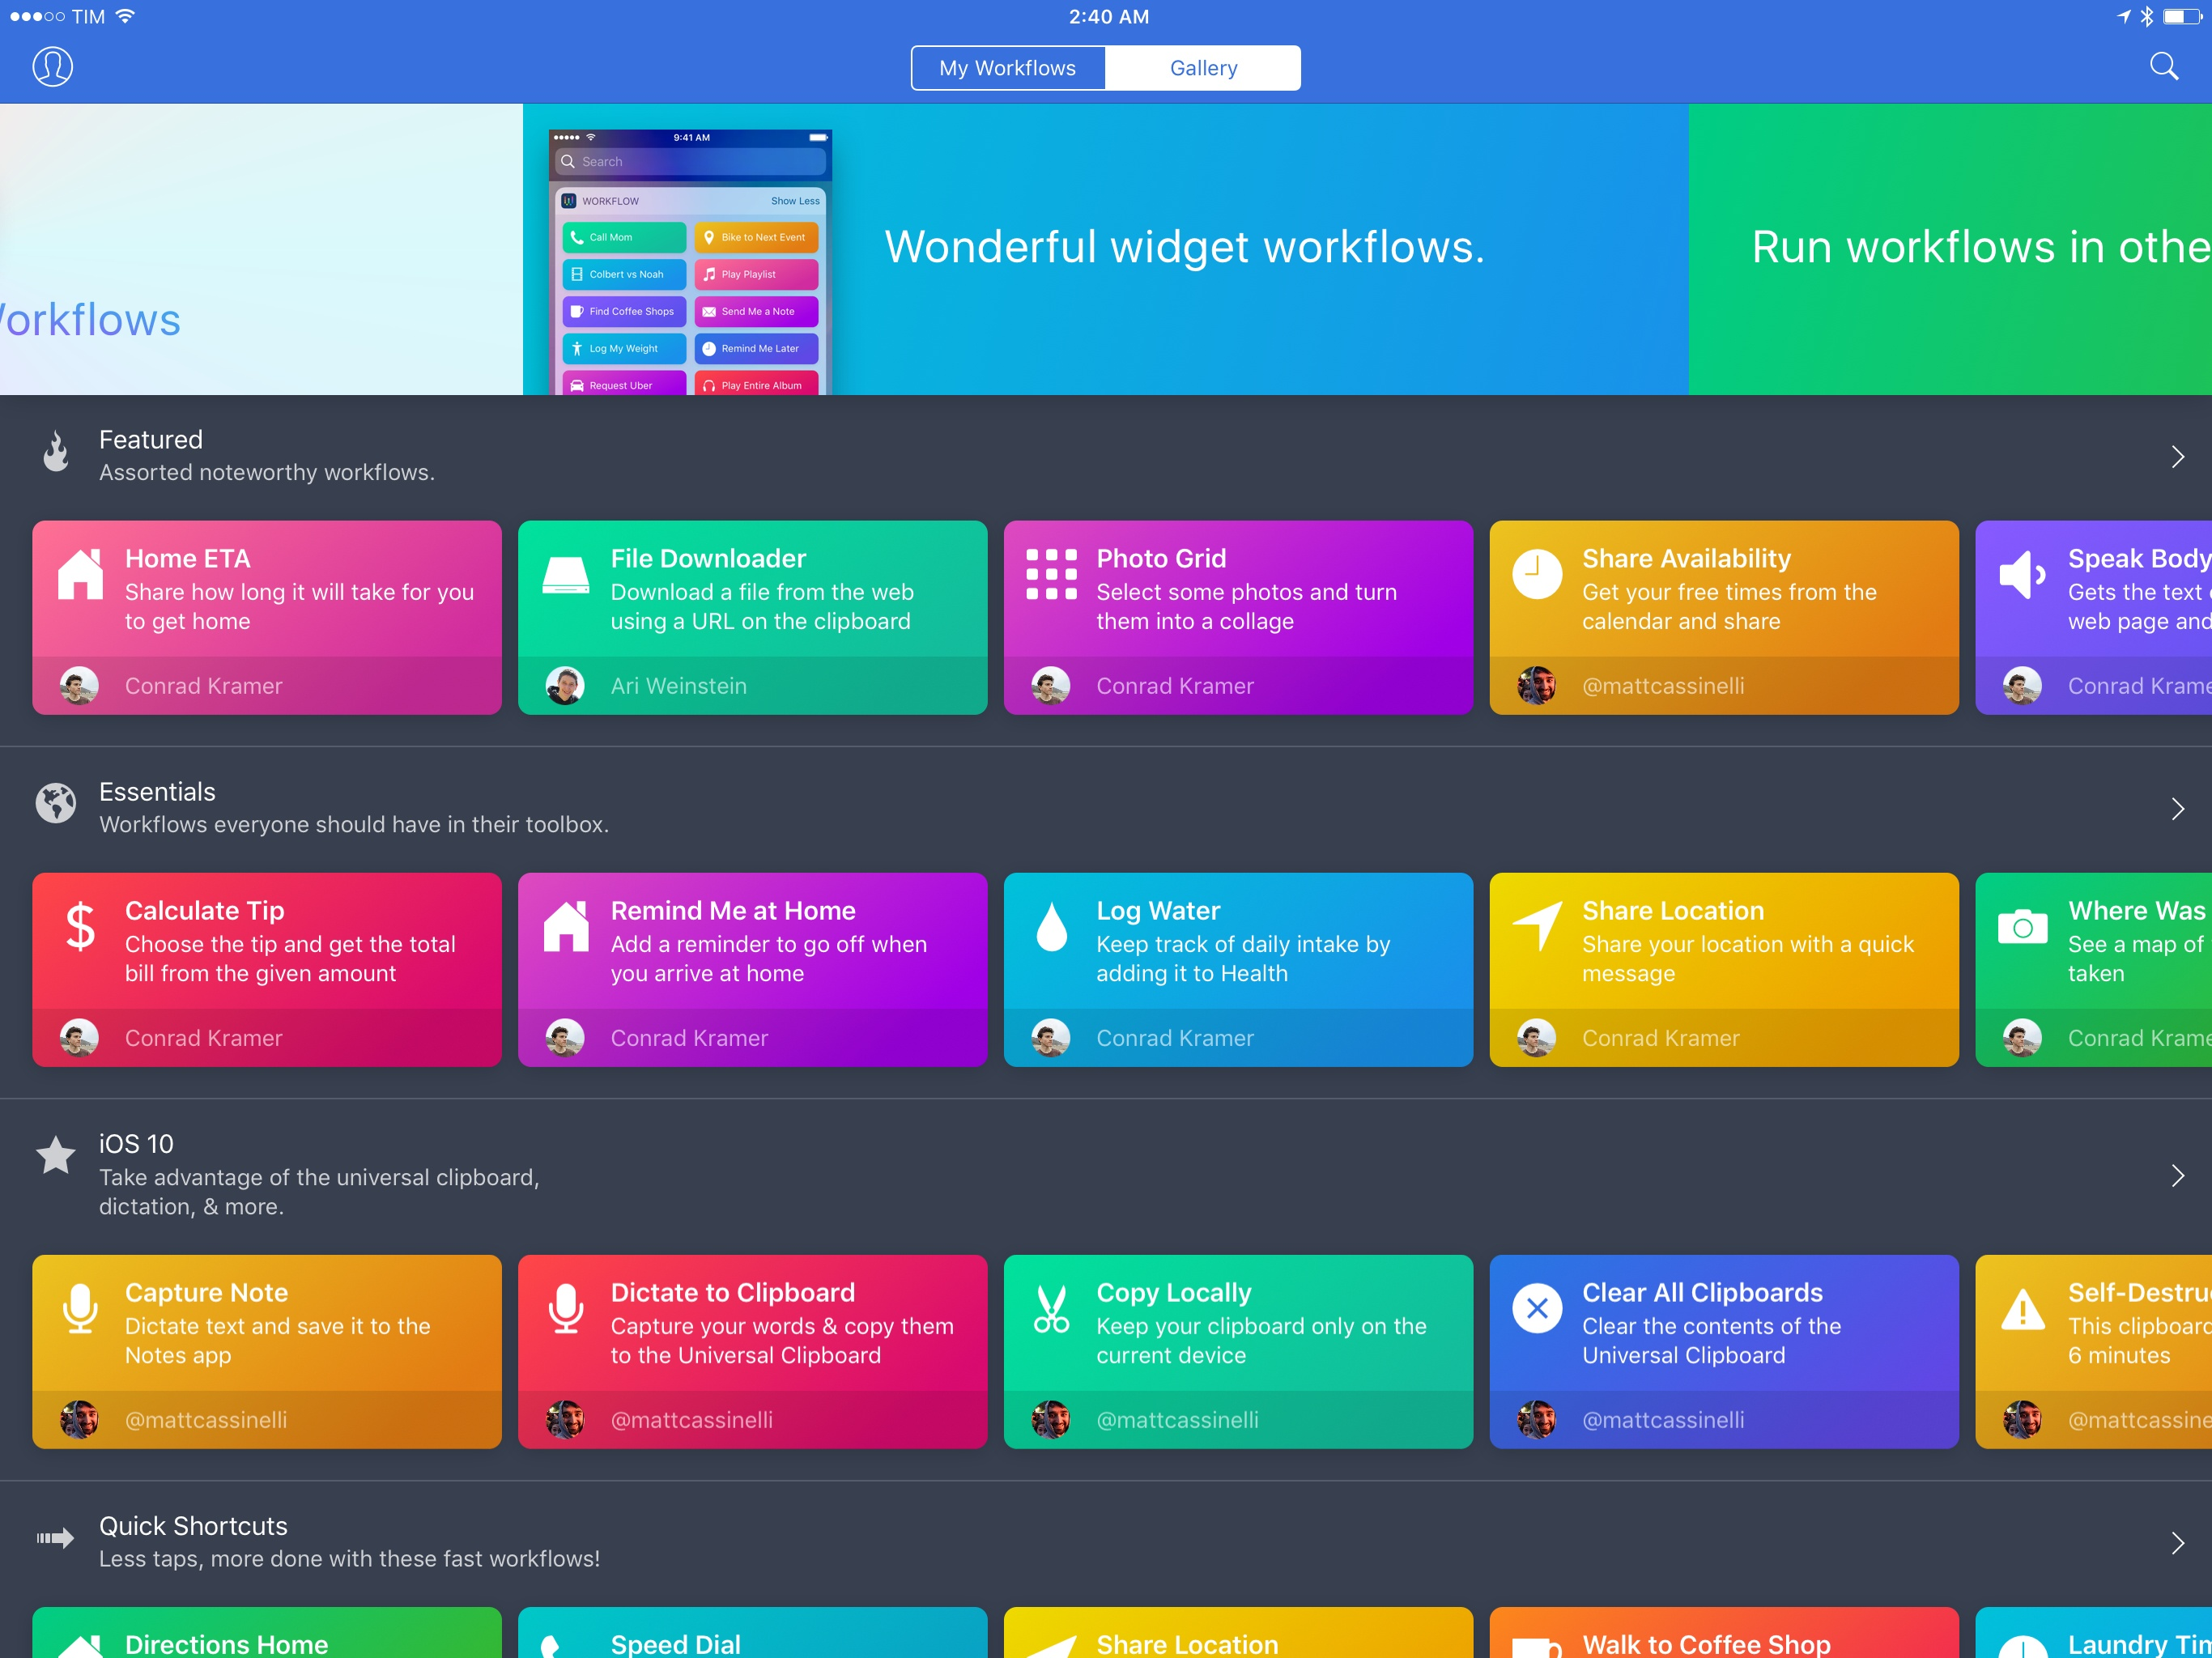 Workflow 1.6 Brings Revamped Gallery, Better Tools to Share and Import Workflows